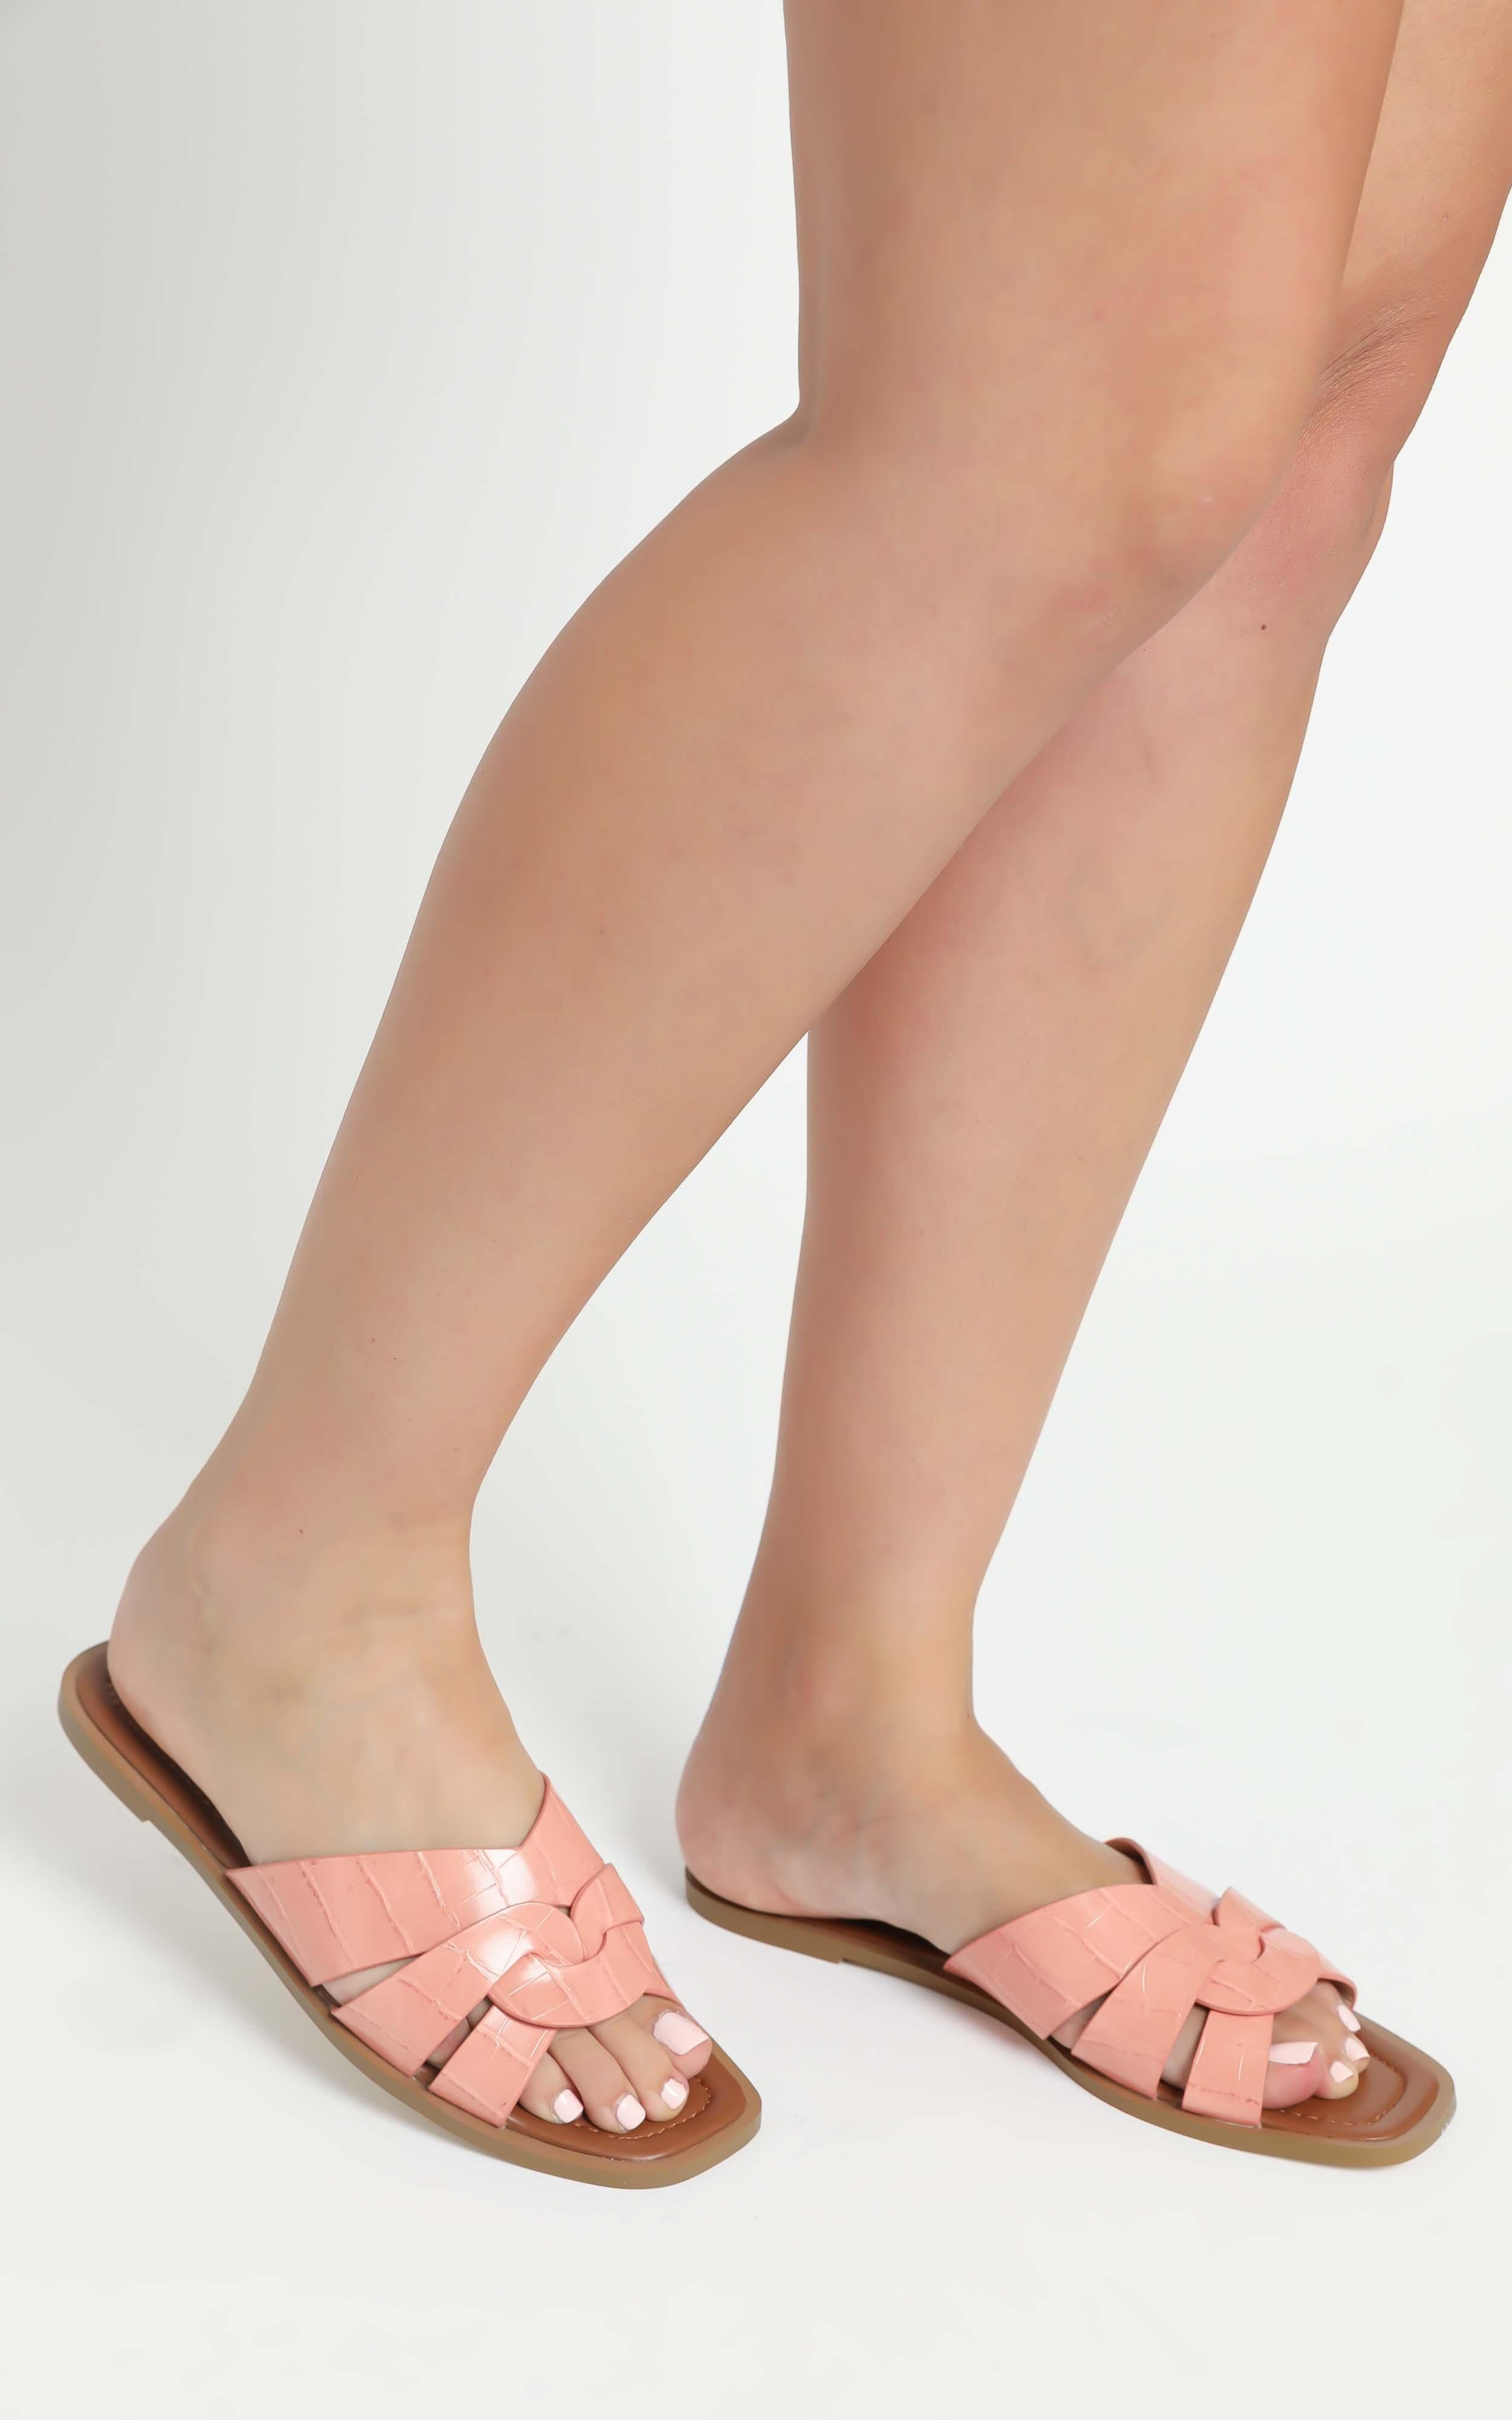 Verali - Glam Sandals in Peach Croc - 5, Pink, hi-res image number null